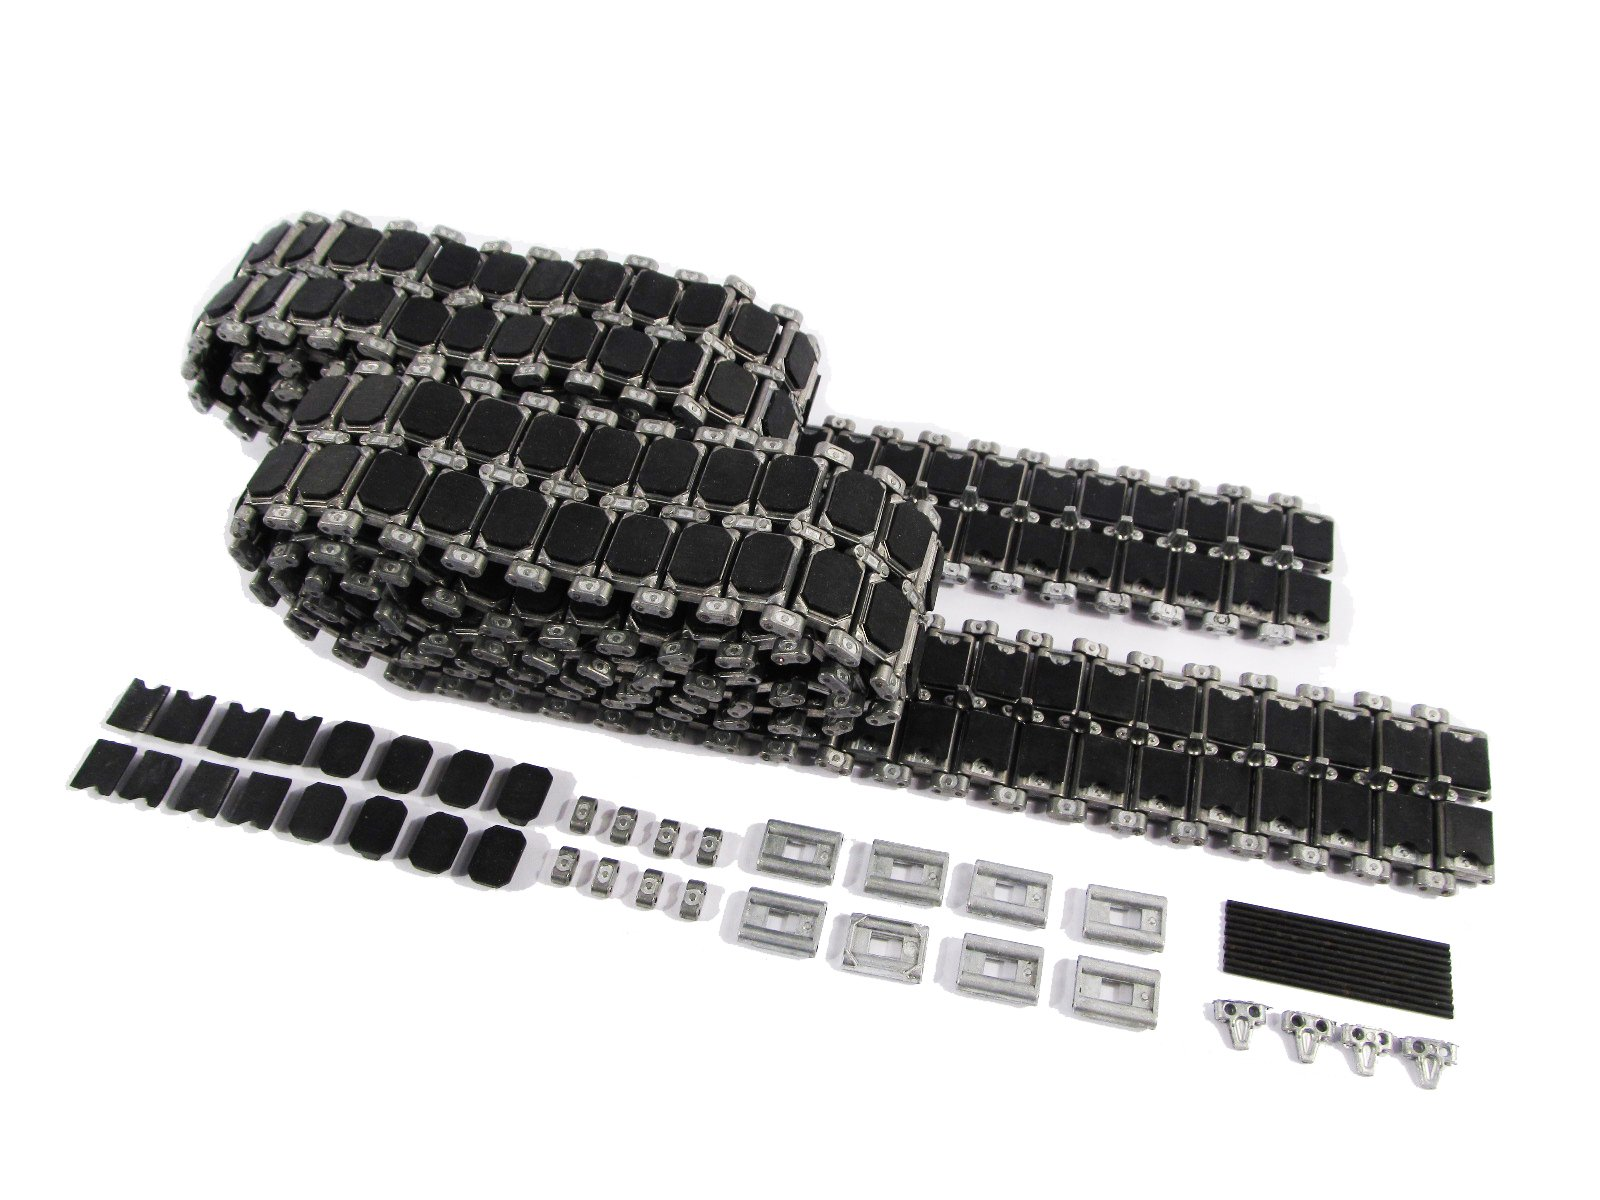 Mato Metal Tracks Set, with Rubber Metal Pads for 1/16 Heng Long 3918-1 American M1A2 Abrams RC Tank